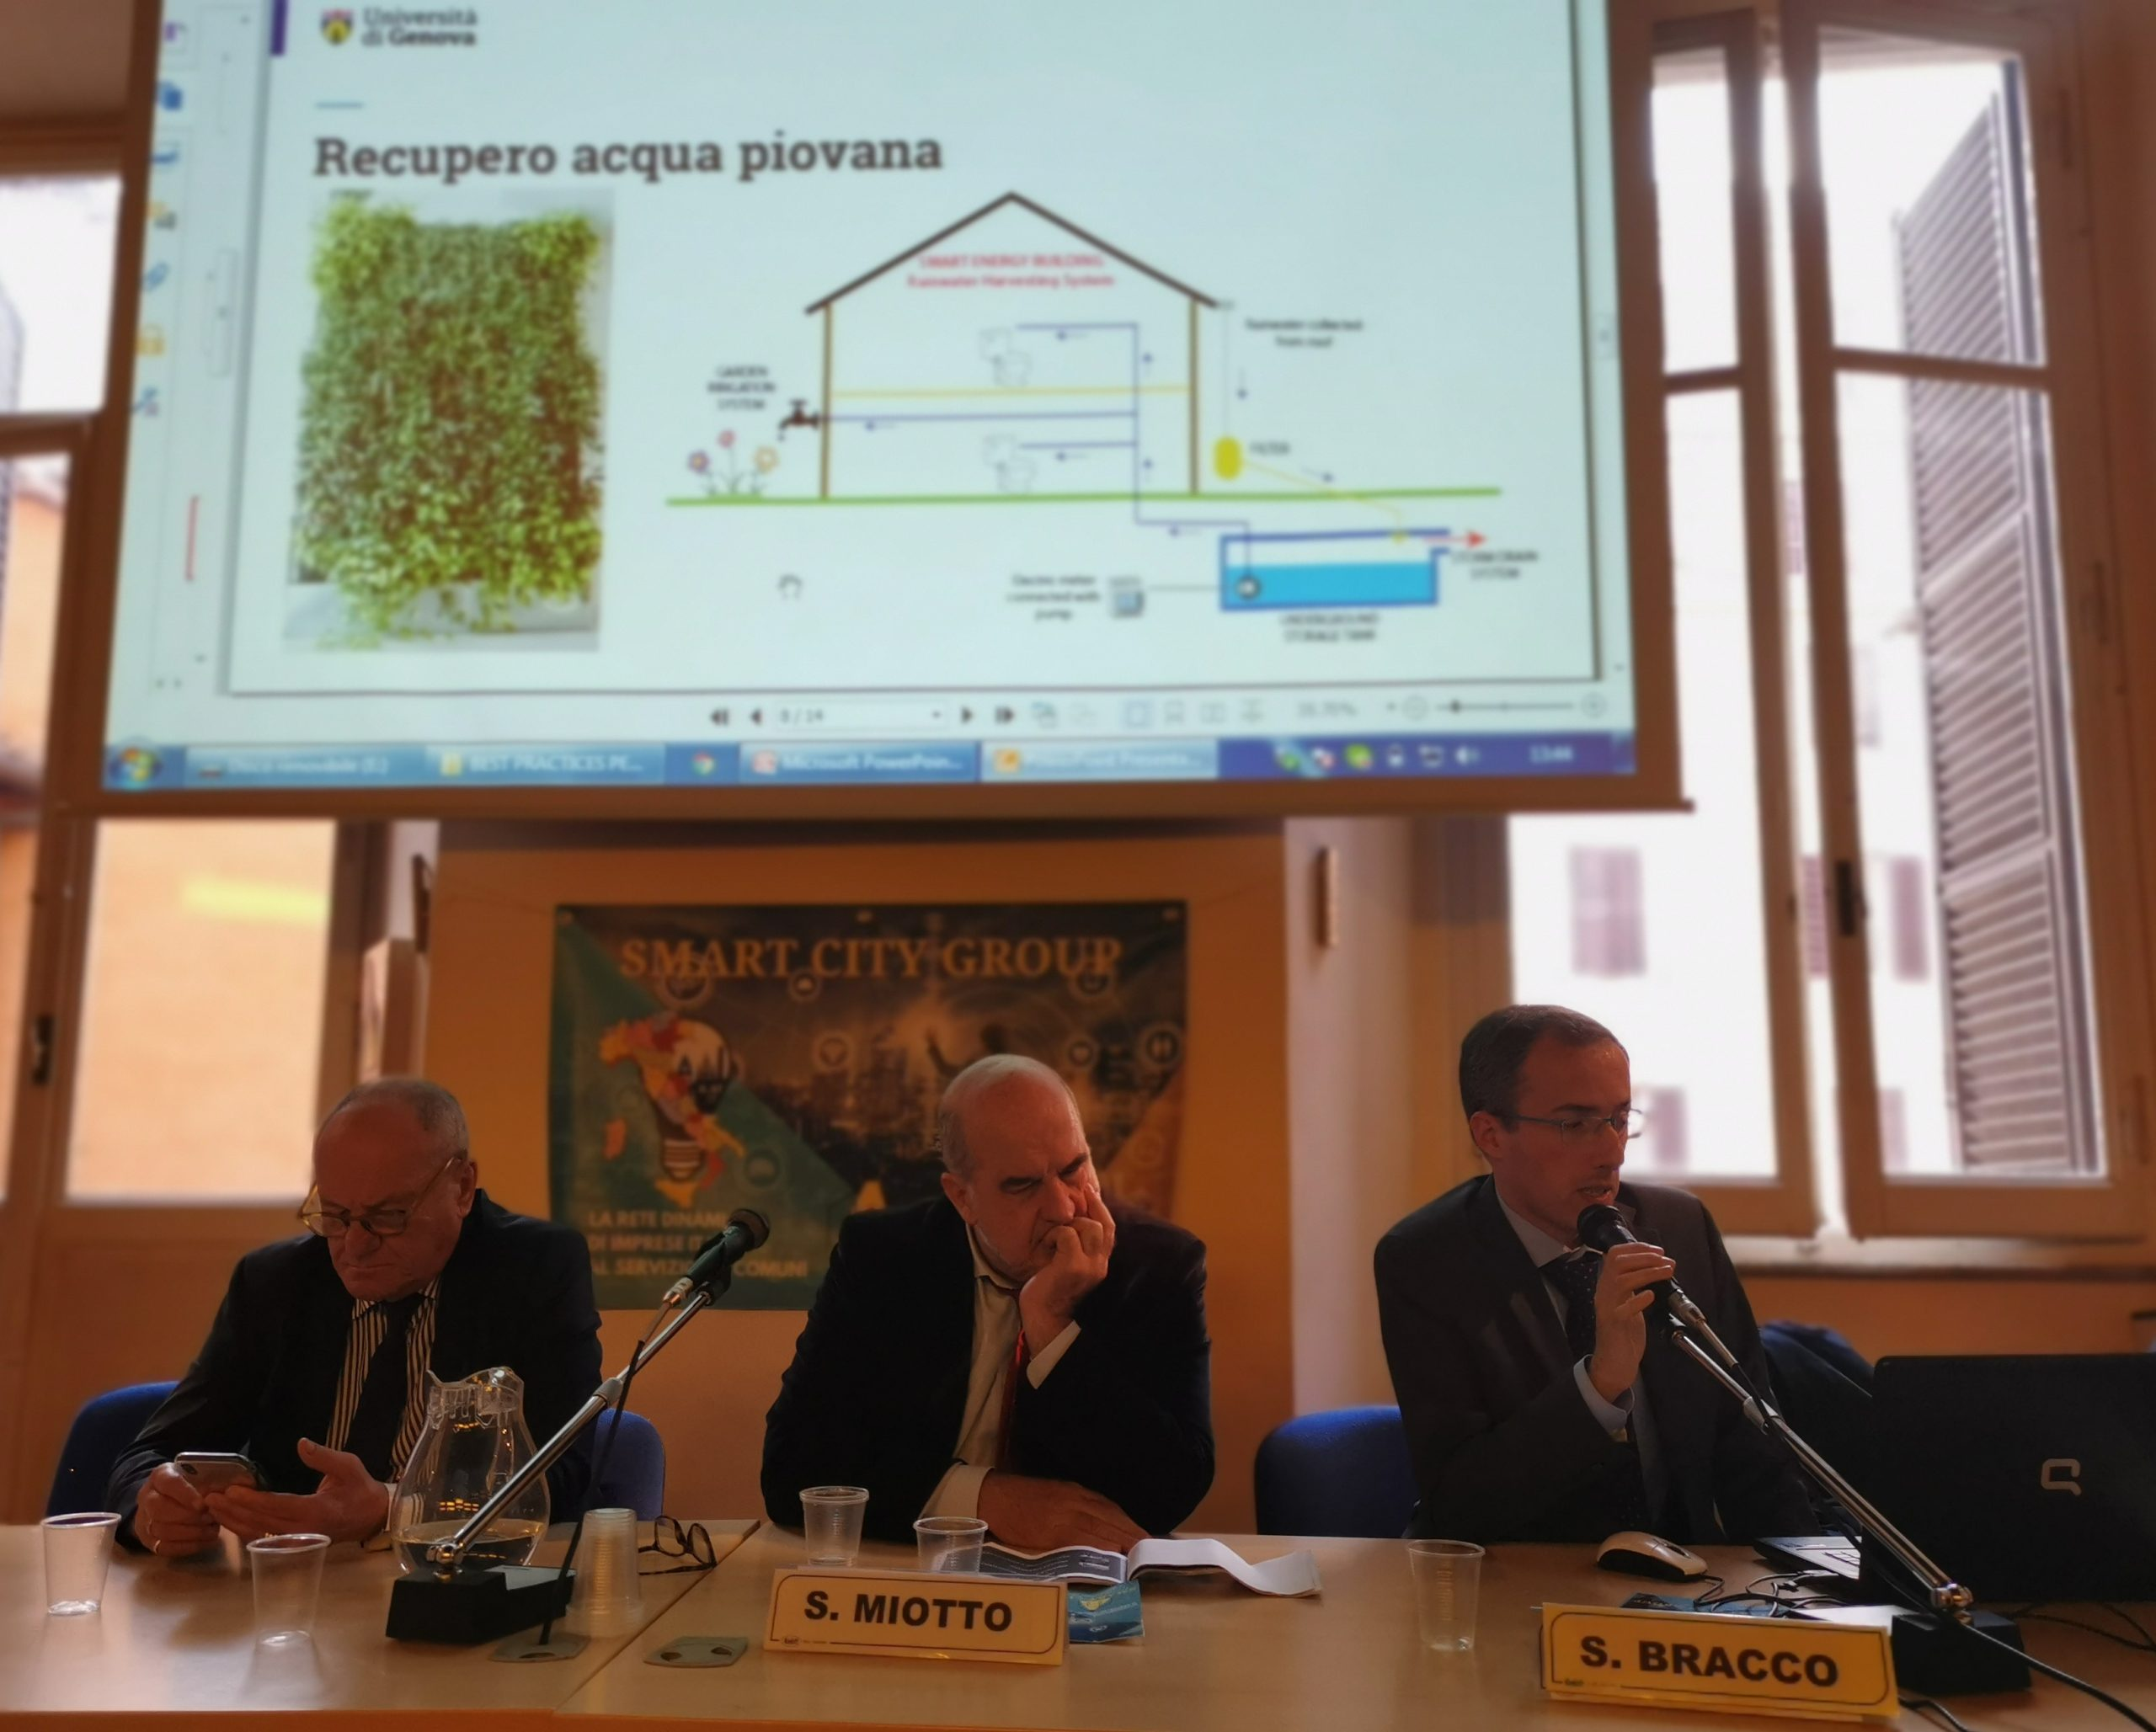 F. CHIUCHIURLOTTO (ANCI) S. MIOTTO (SMART CITY GROUP) S. BRACCO (UNIVERSITA' DI GENOVA)